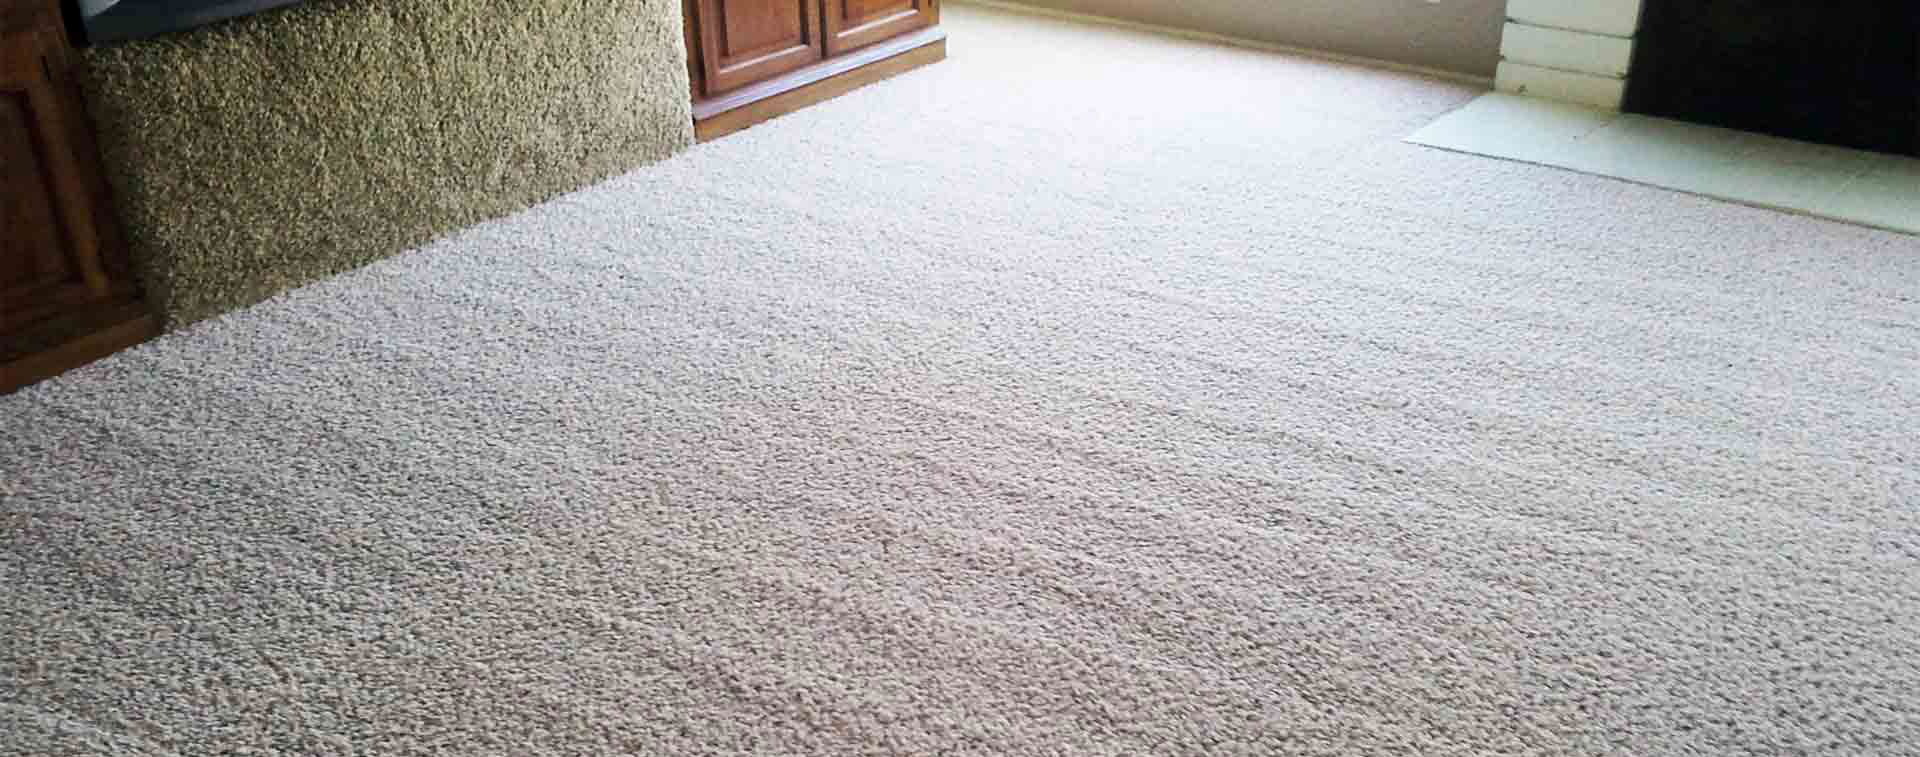 Carpet Cleaning Baulkham Hills